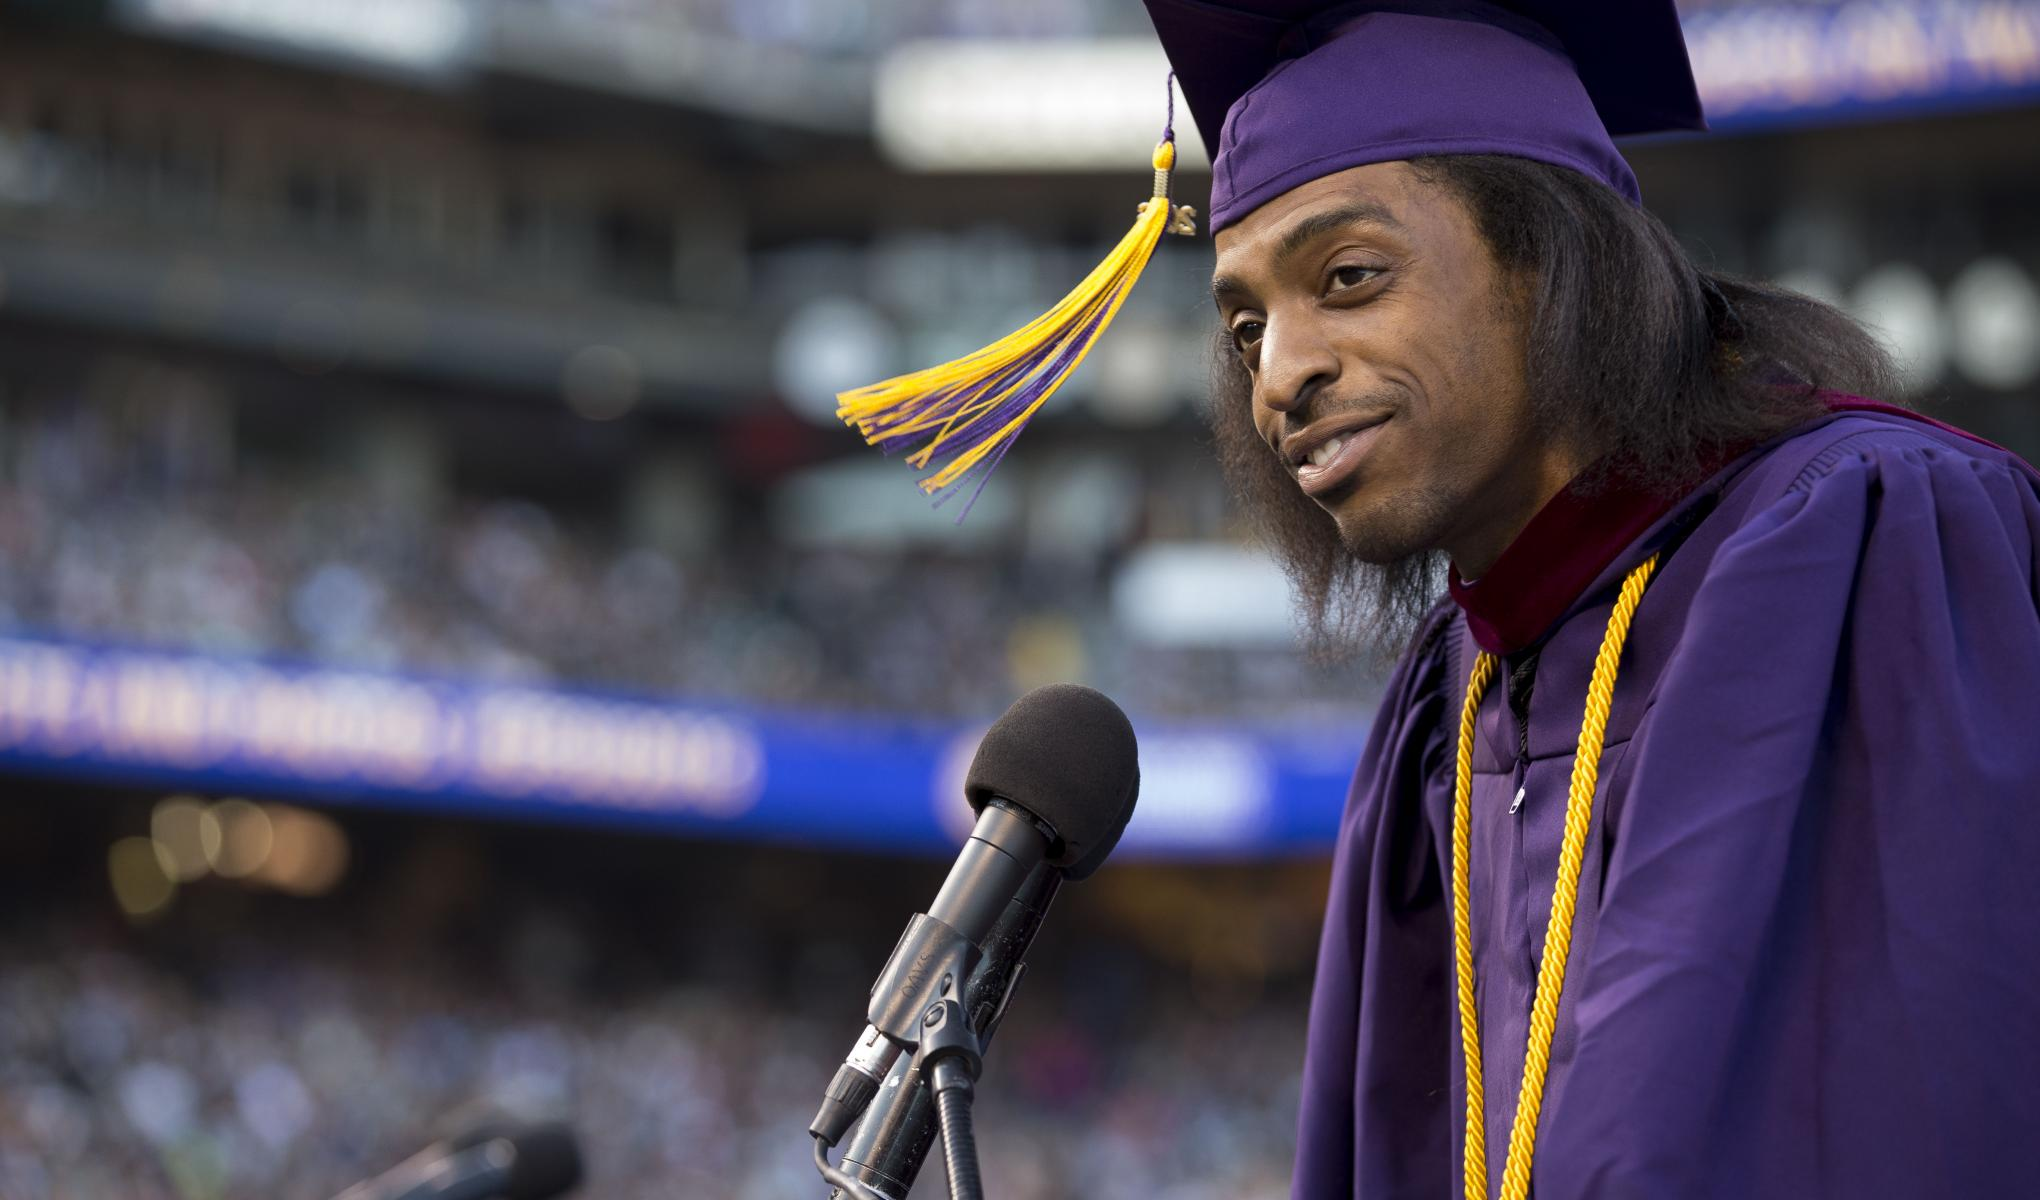 SF State graduate Richard Polote speaking at Commencement